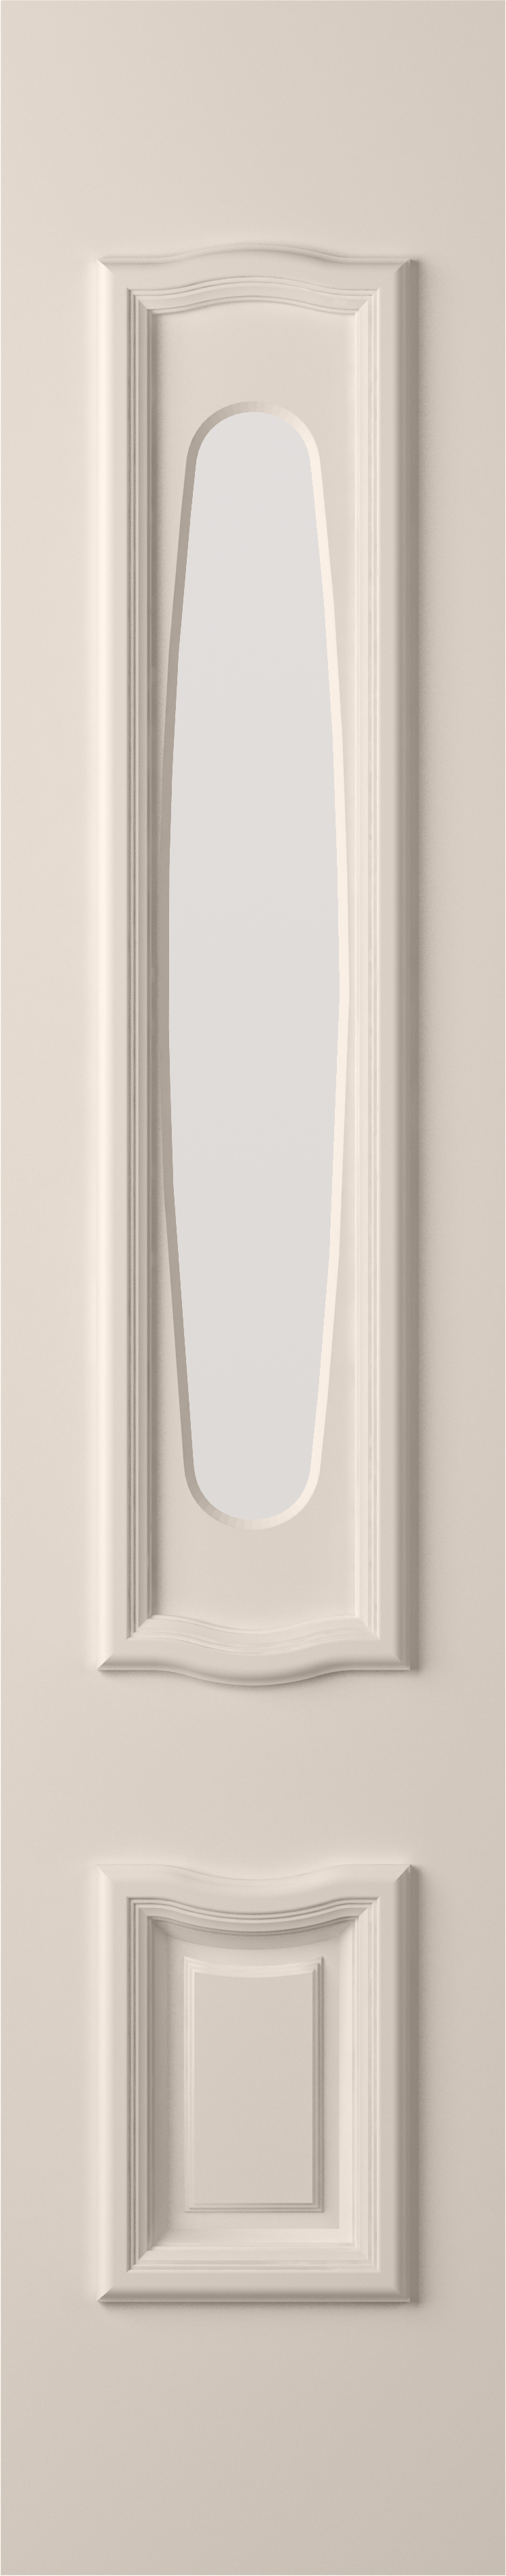 Corinthian Classic Primed Decorative Exterior Sidelight